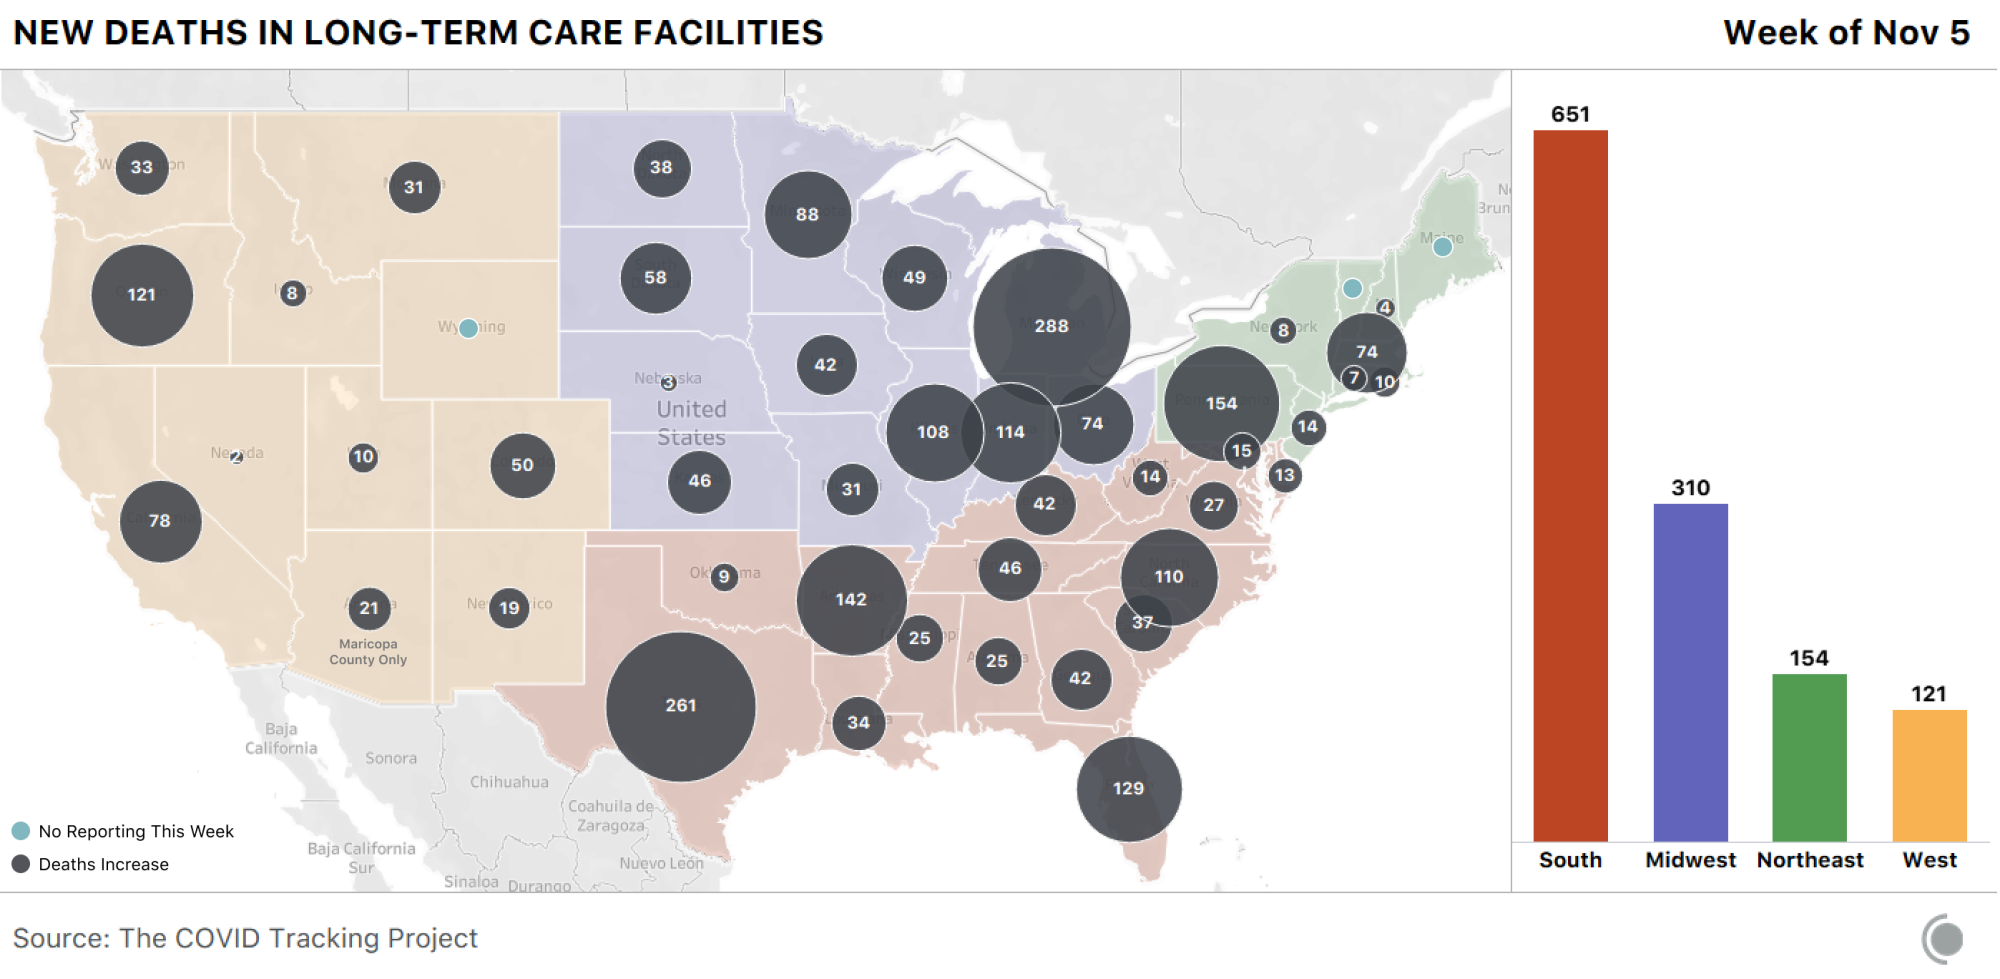 Map of the US showing new deaths in LTC facilities this week. Michigan saw the most deaths with 288. Most deaths are occurring in the South and Midwest.